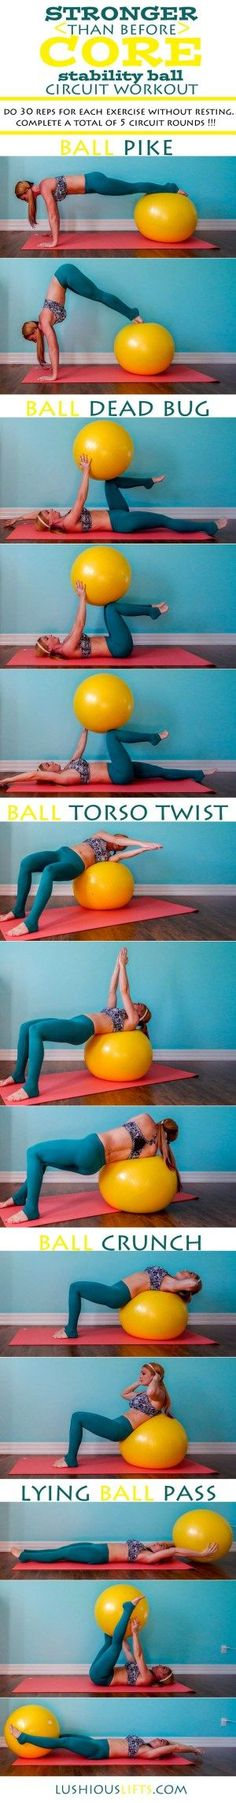 Stronger {than before} Core Stability Ball Circuit Workout || lushiousLIFTS.com